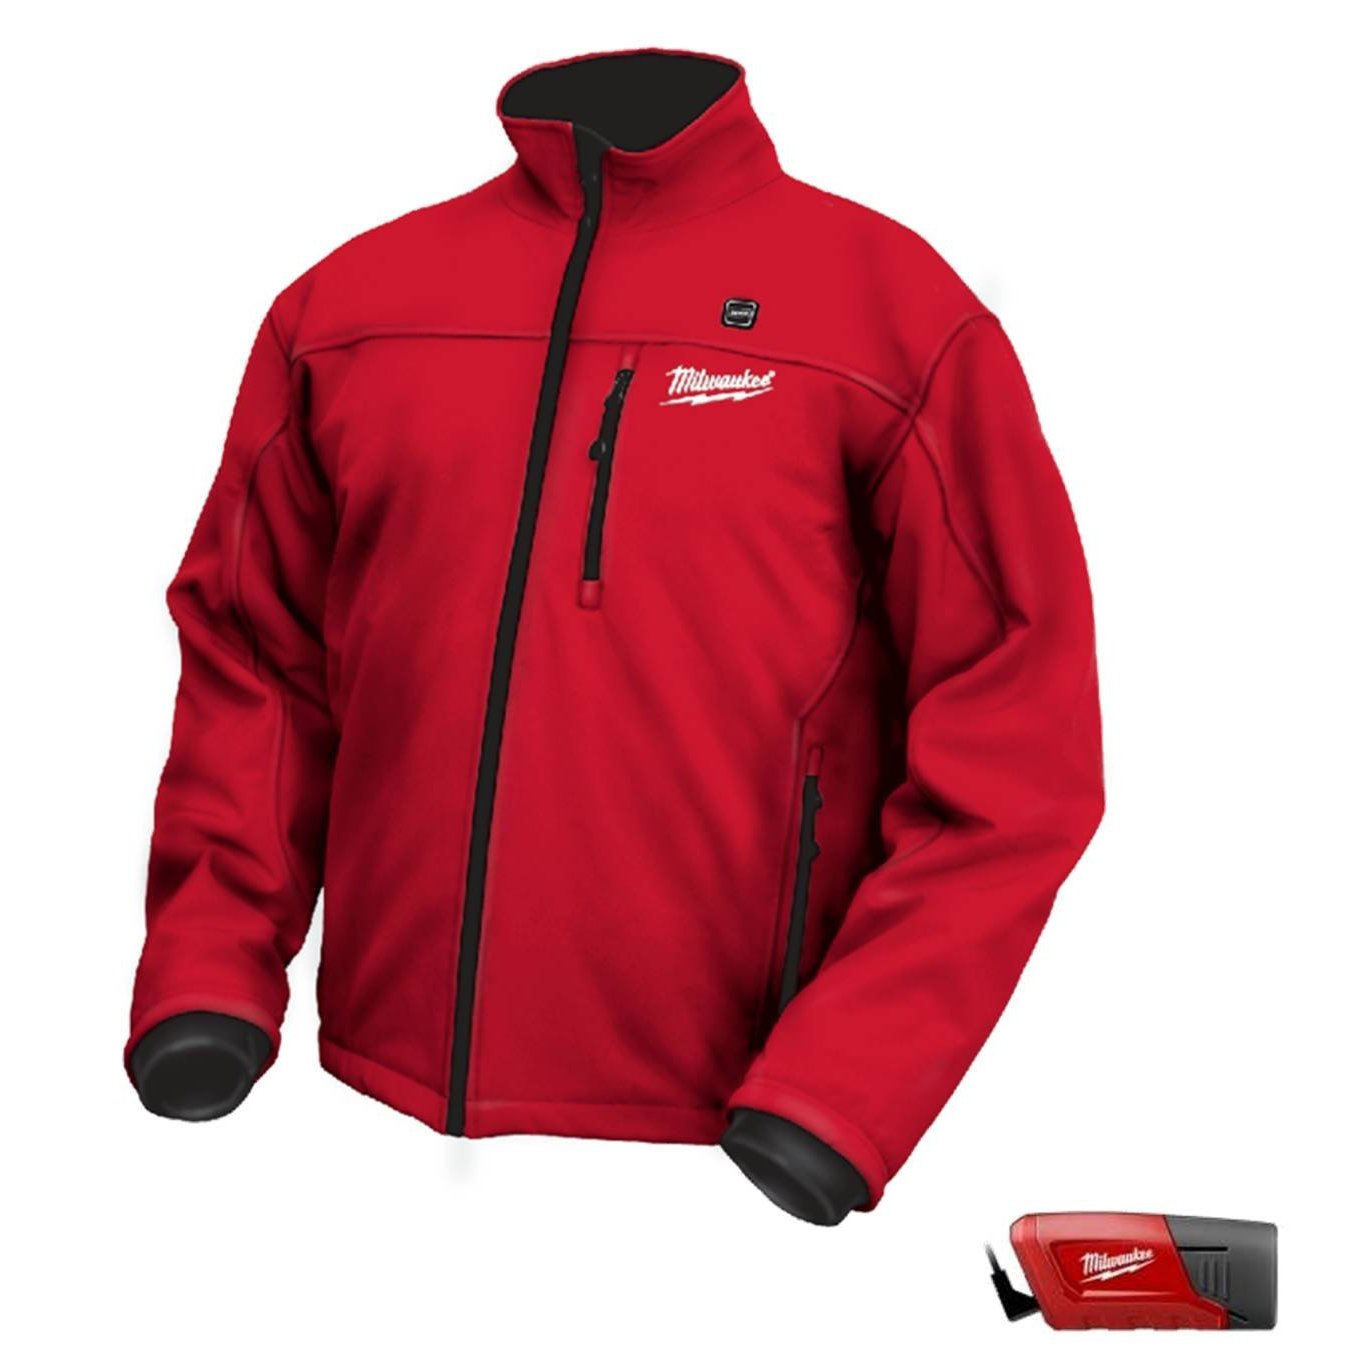 Power Up For 8 Hours With Milwaukee's M12 Heated Jacket ...